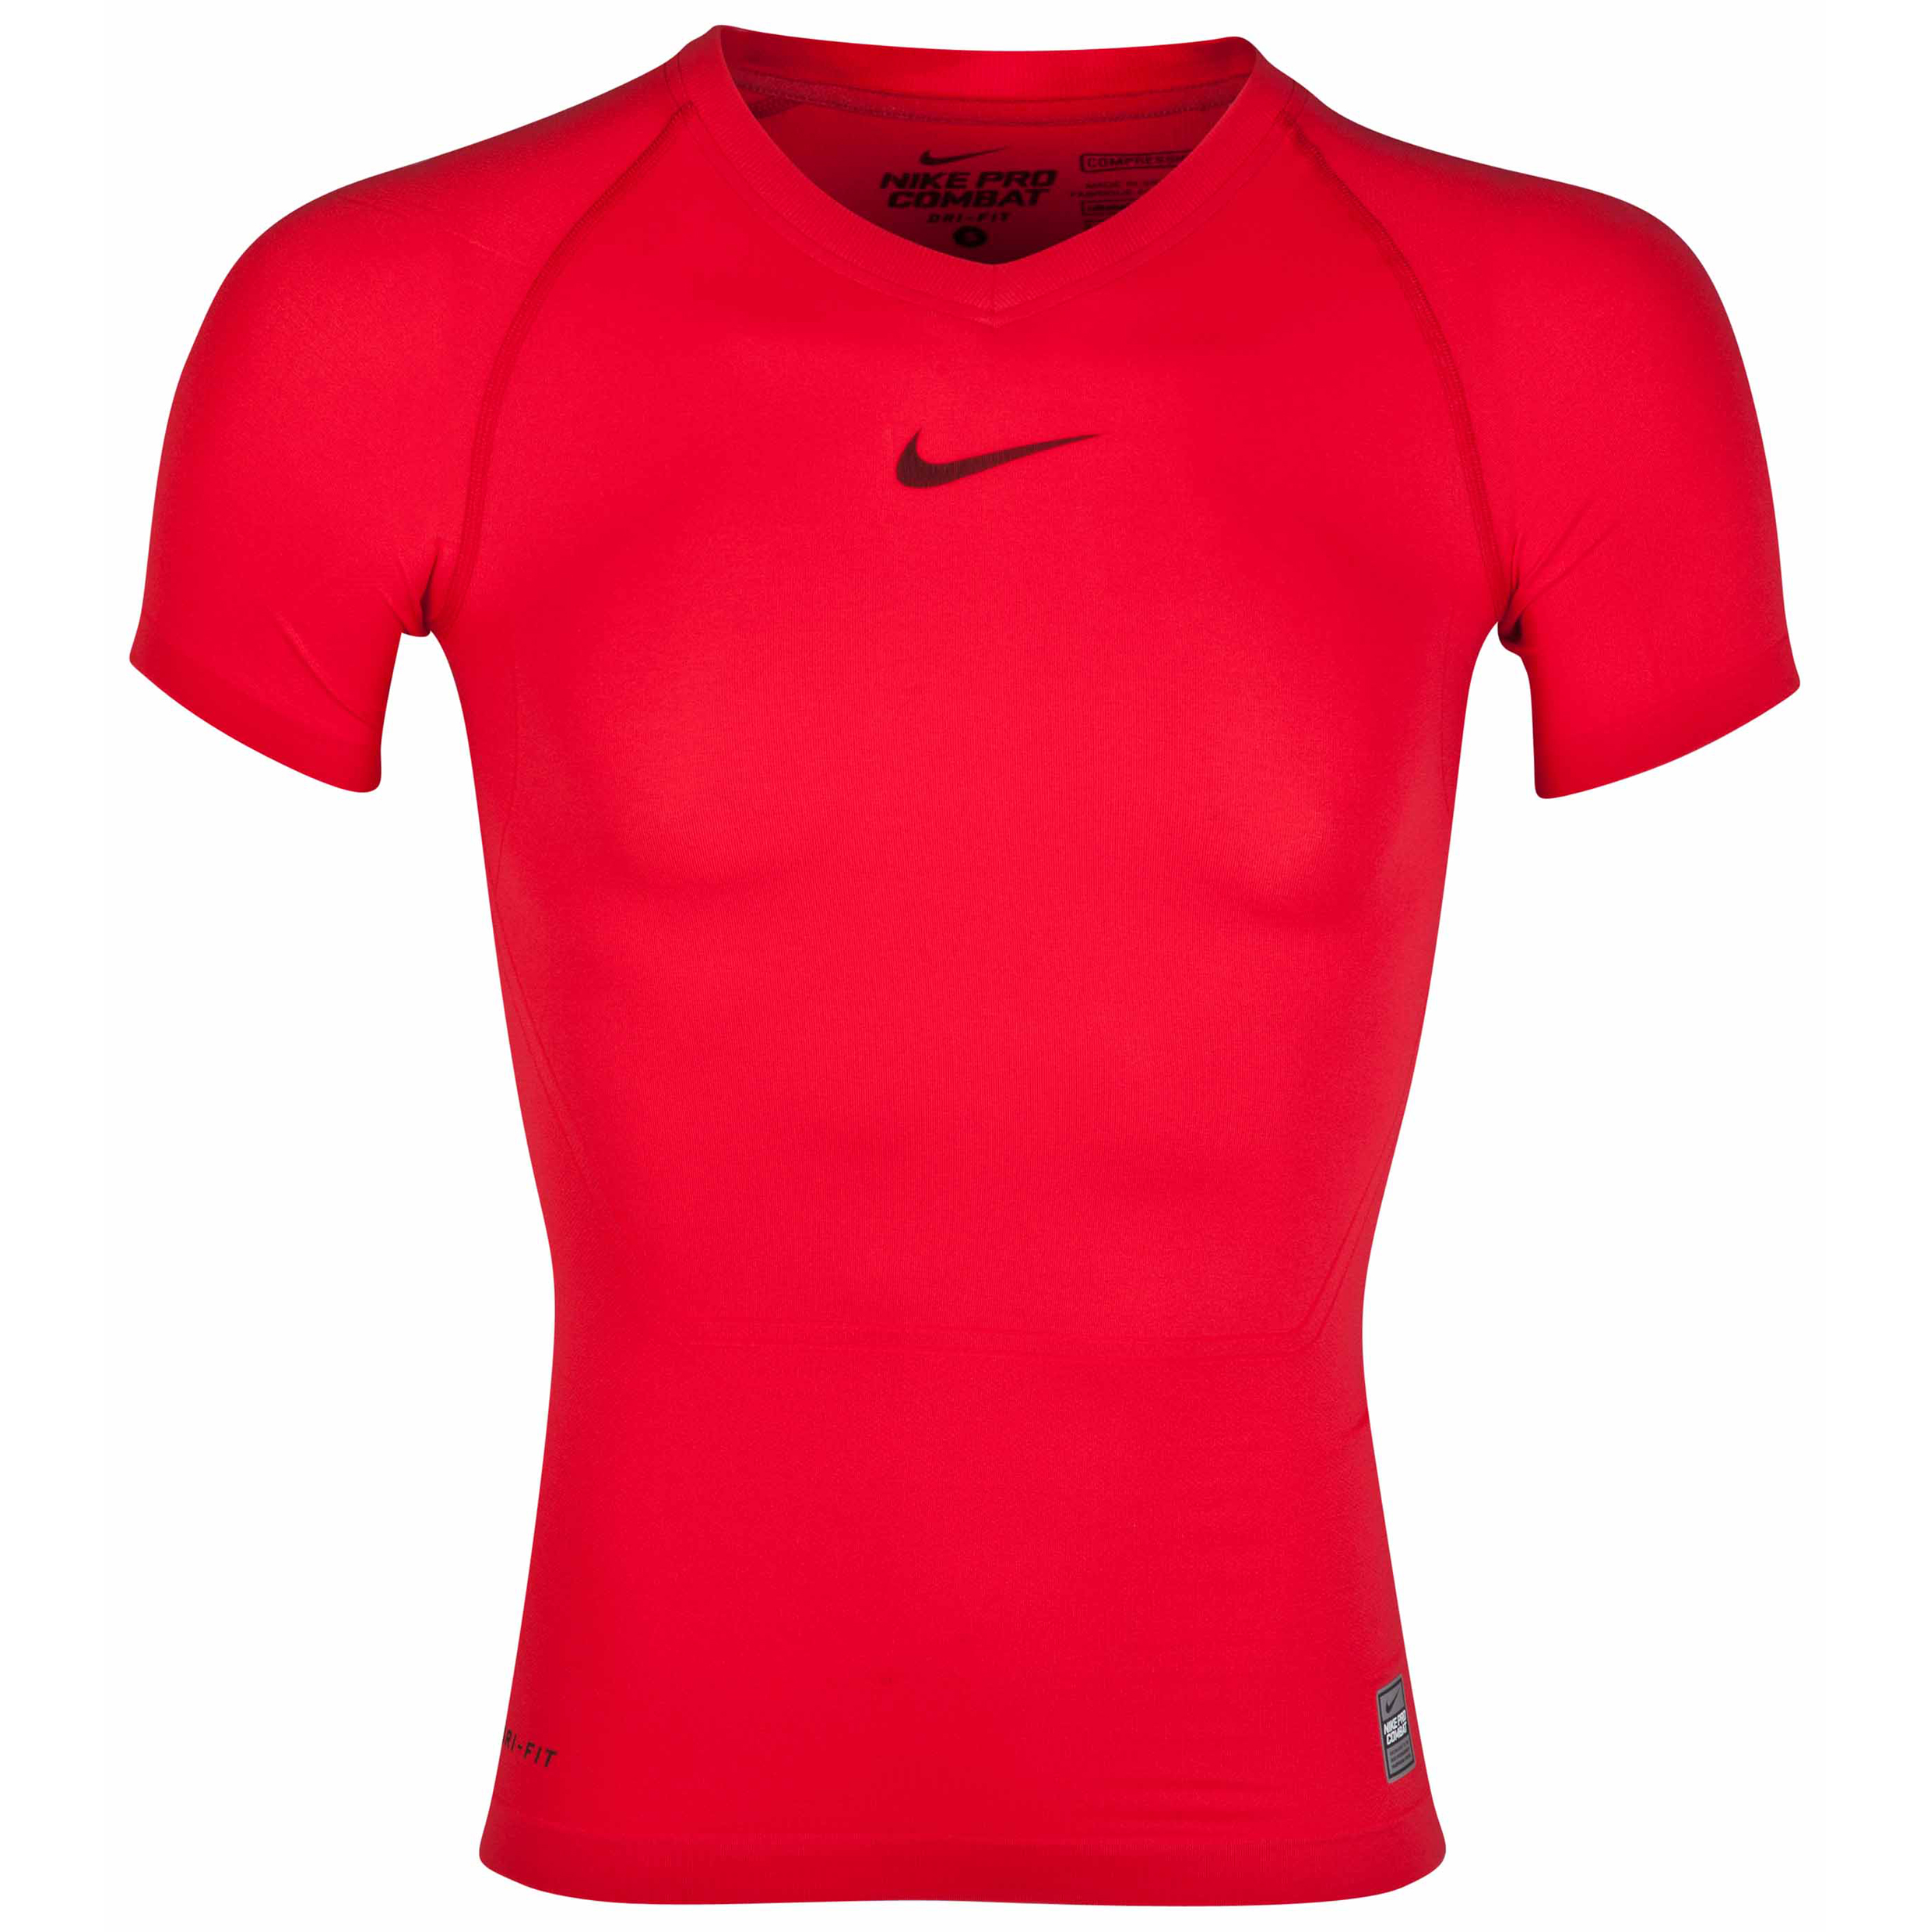 Nike Pro Combat Lightweight Seamless Base Layer Top Red